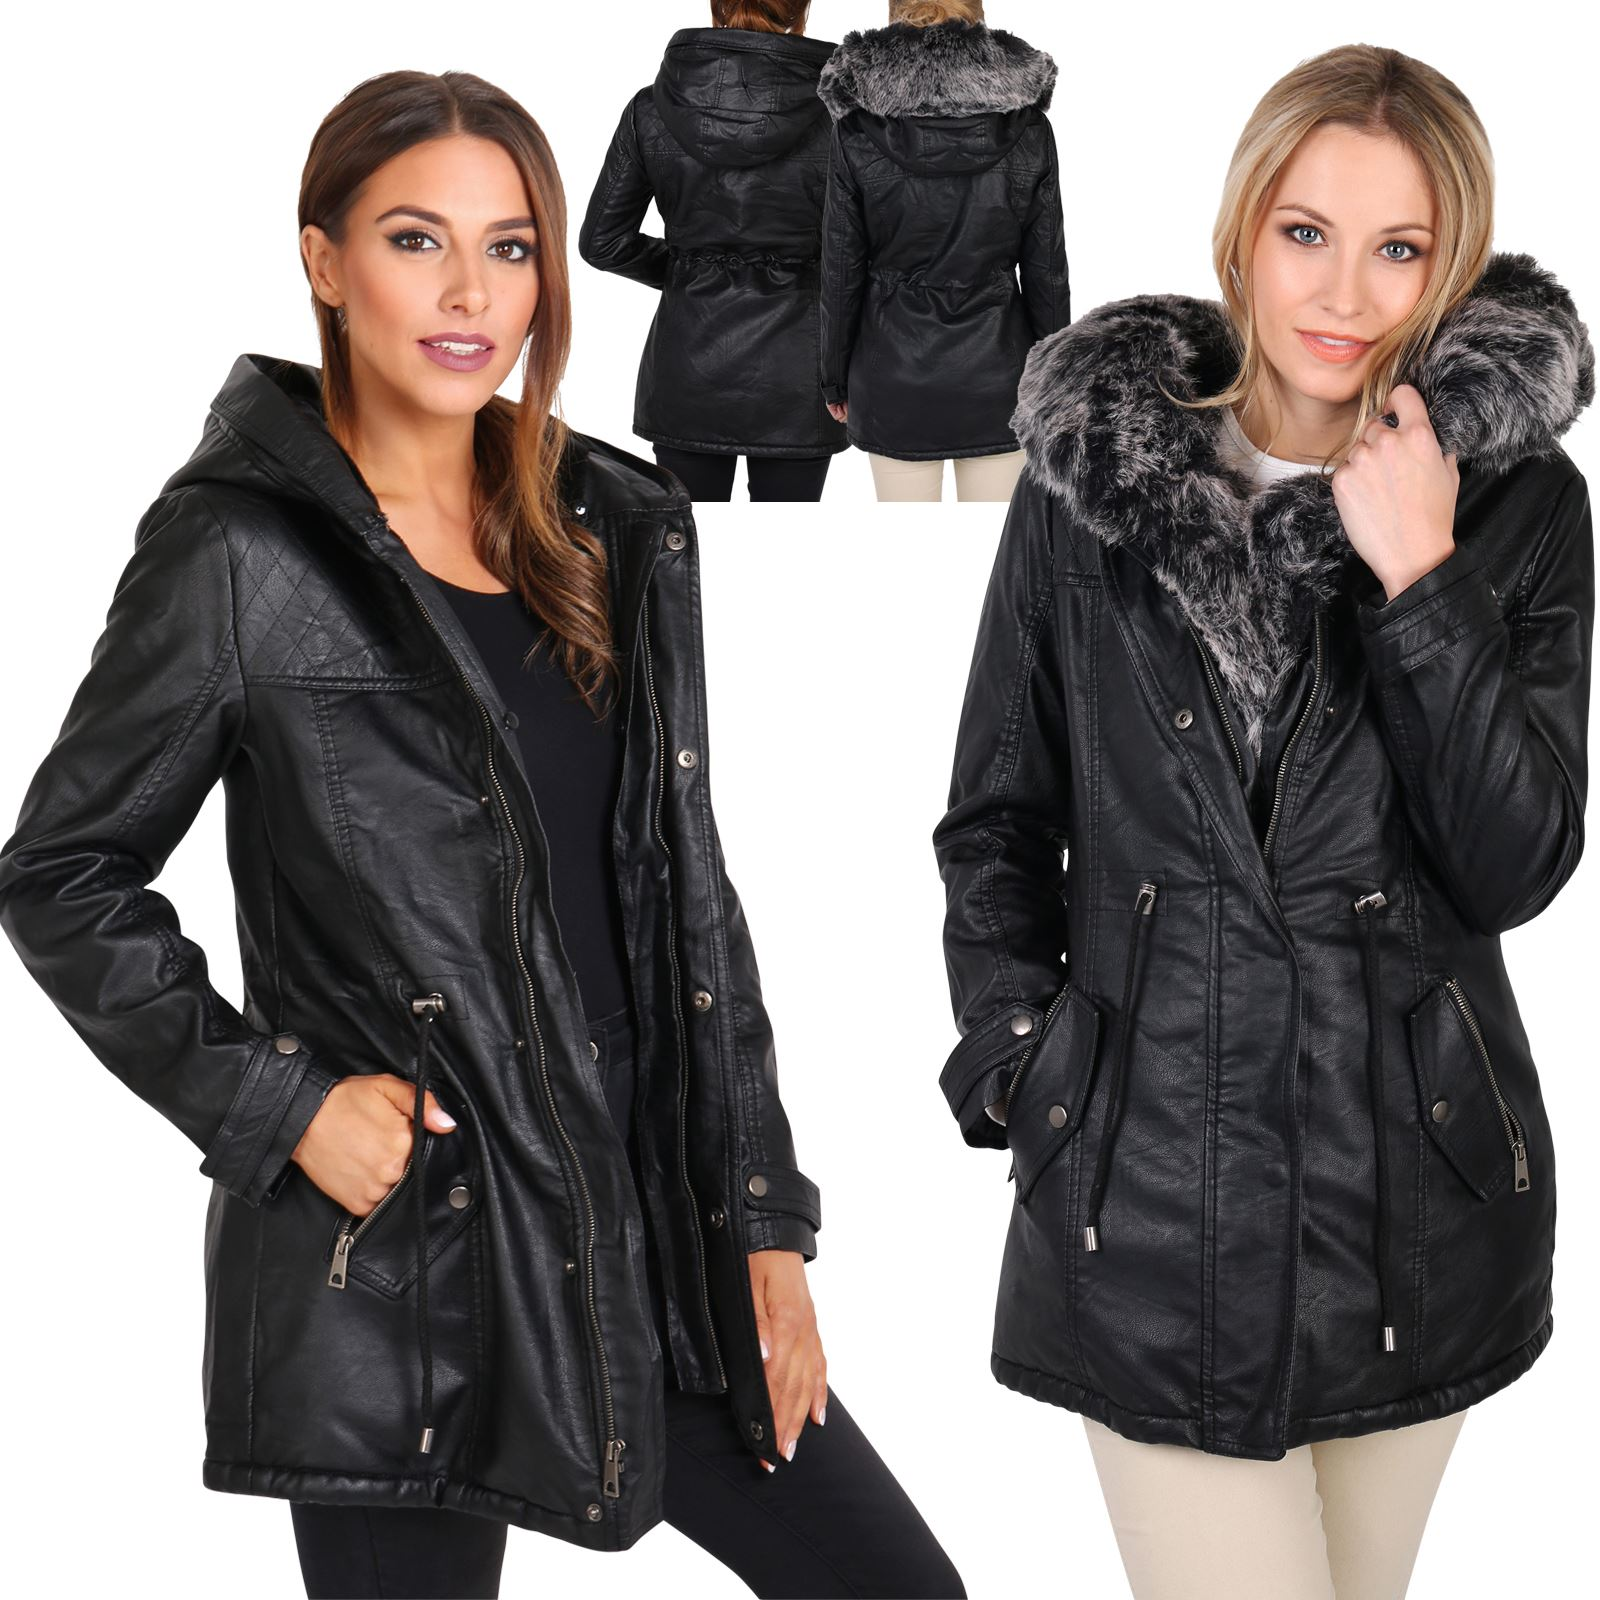 damen frauen warmer fellfutter kunstleder parka kapuze fell pelz imitat jacke ebay. Black Bedroom Furniture Sets. Home Design Ideas